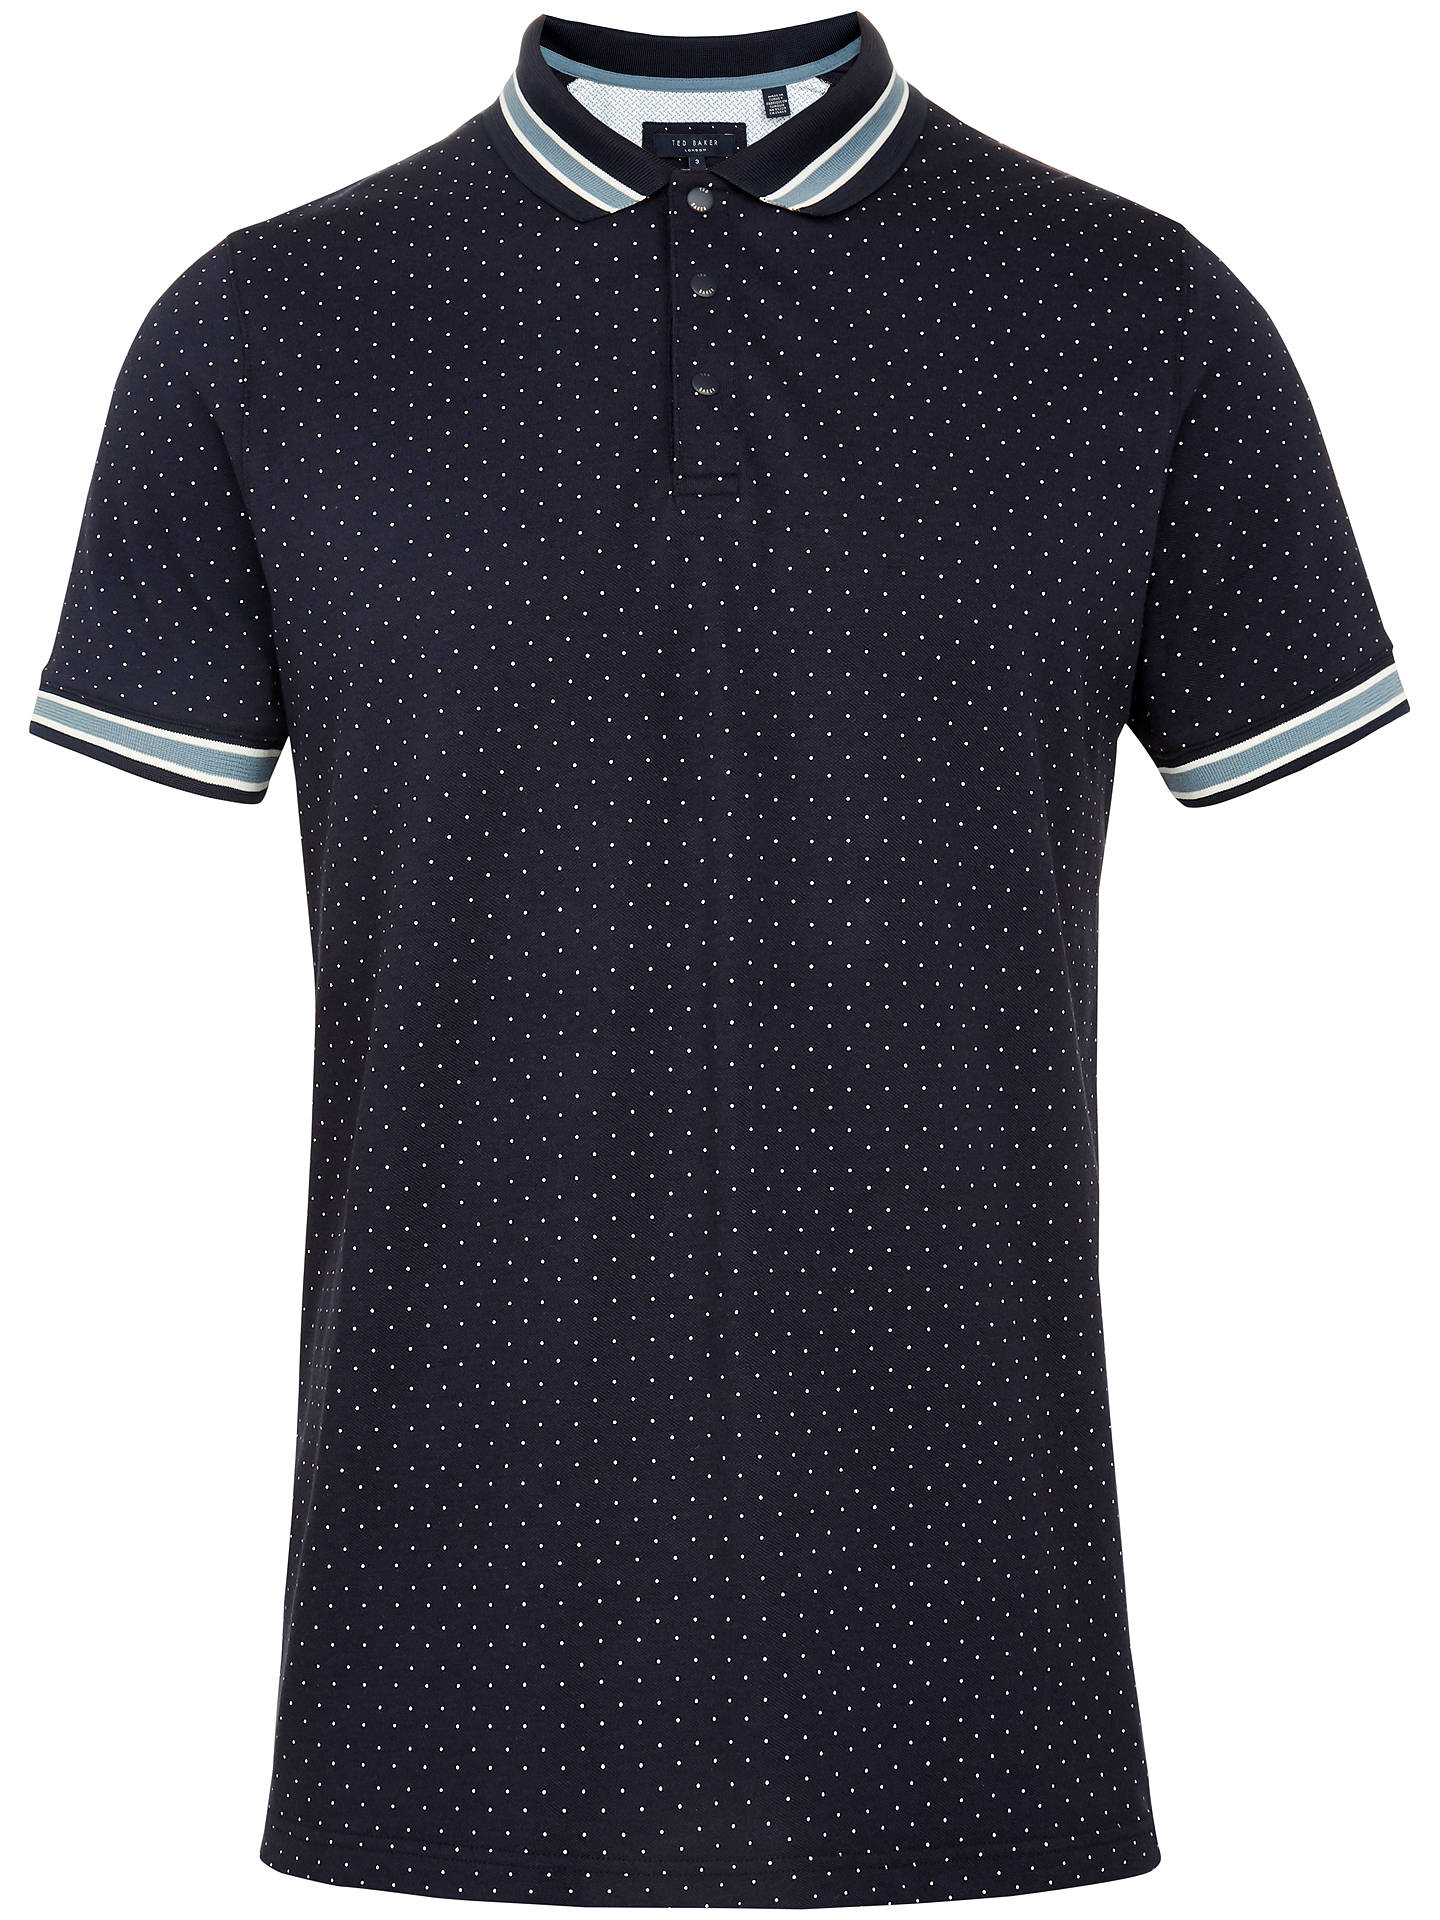 BuyTed Baker Museo Spot Print Polo Shirt, Blue Navy, 2 Online at johnlewis.com